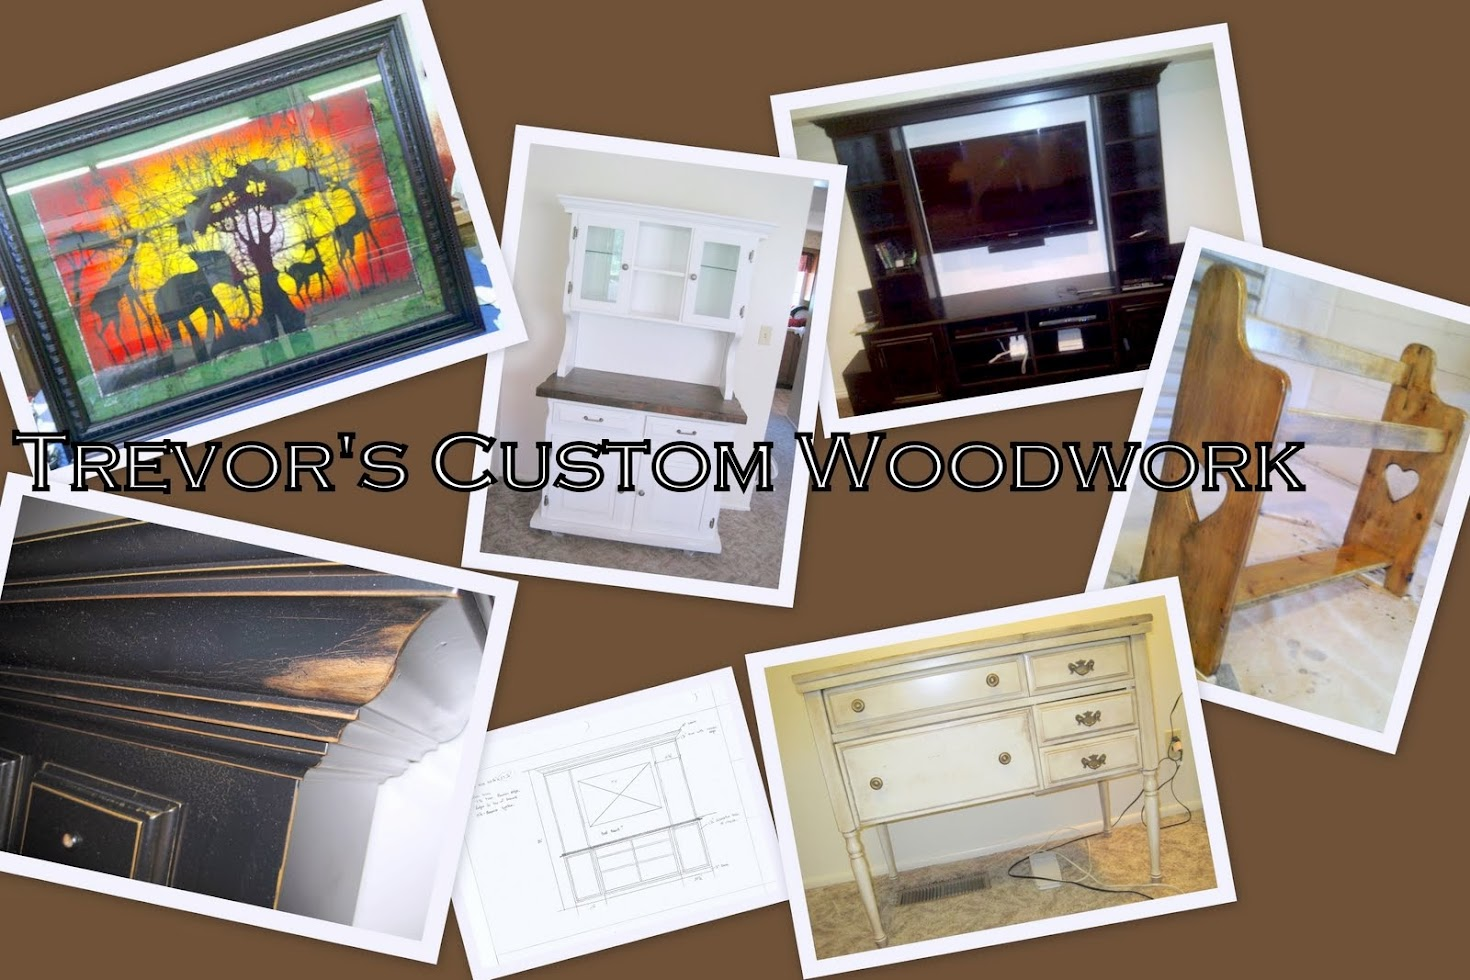 Trevor's Custom Woodwork